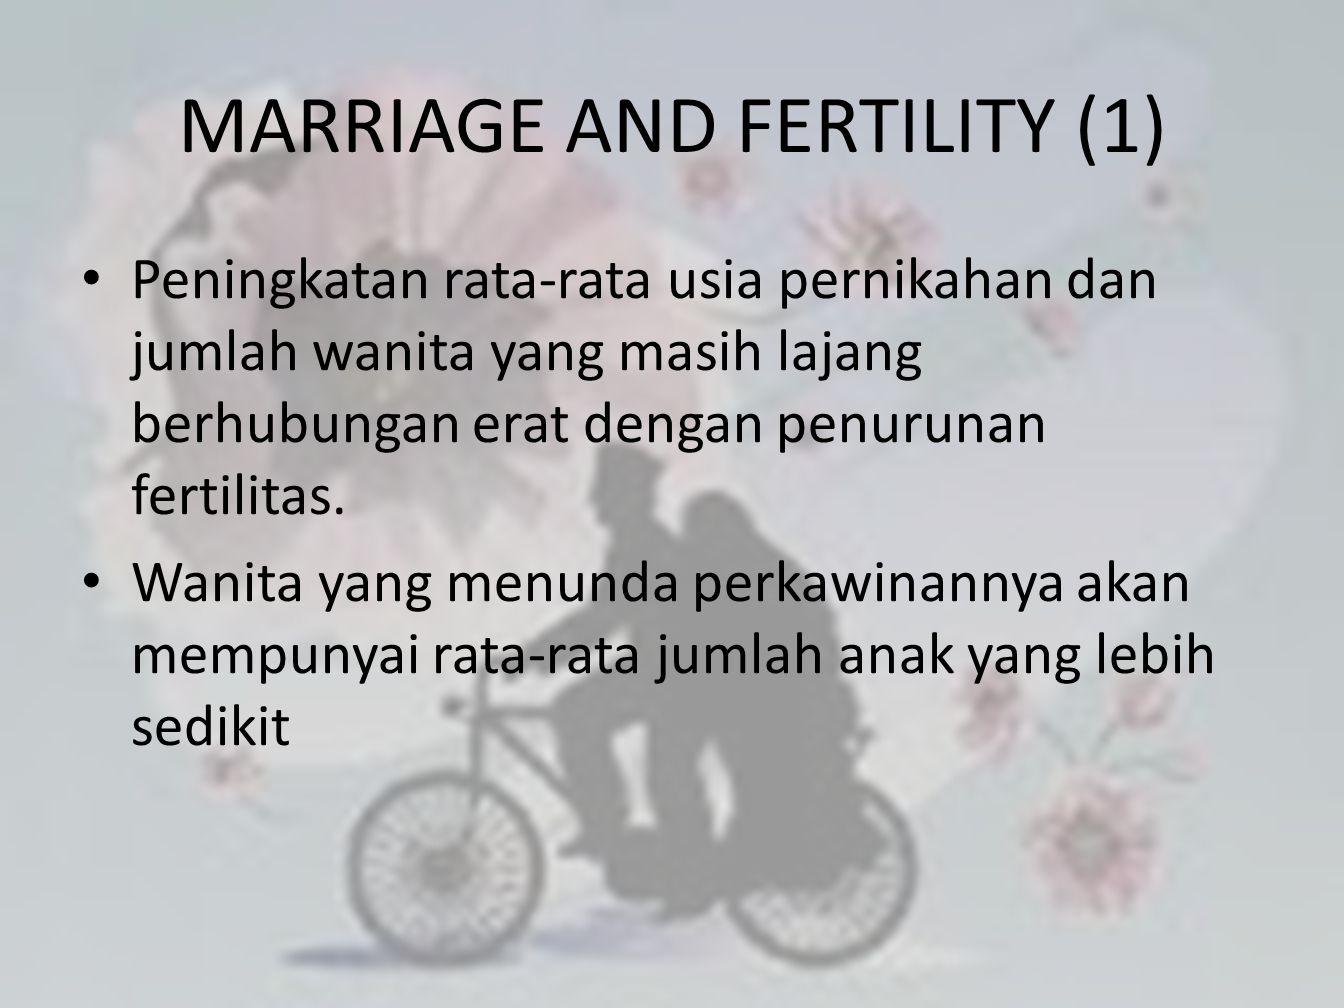 MARRIAGE AND FERTILITY (1)